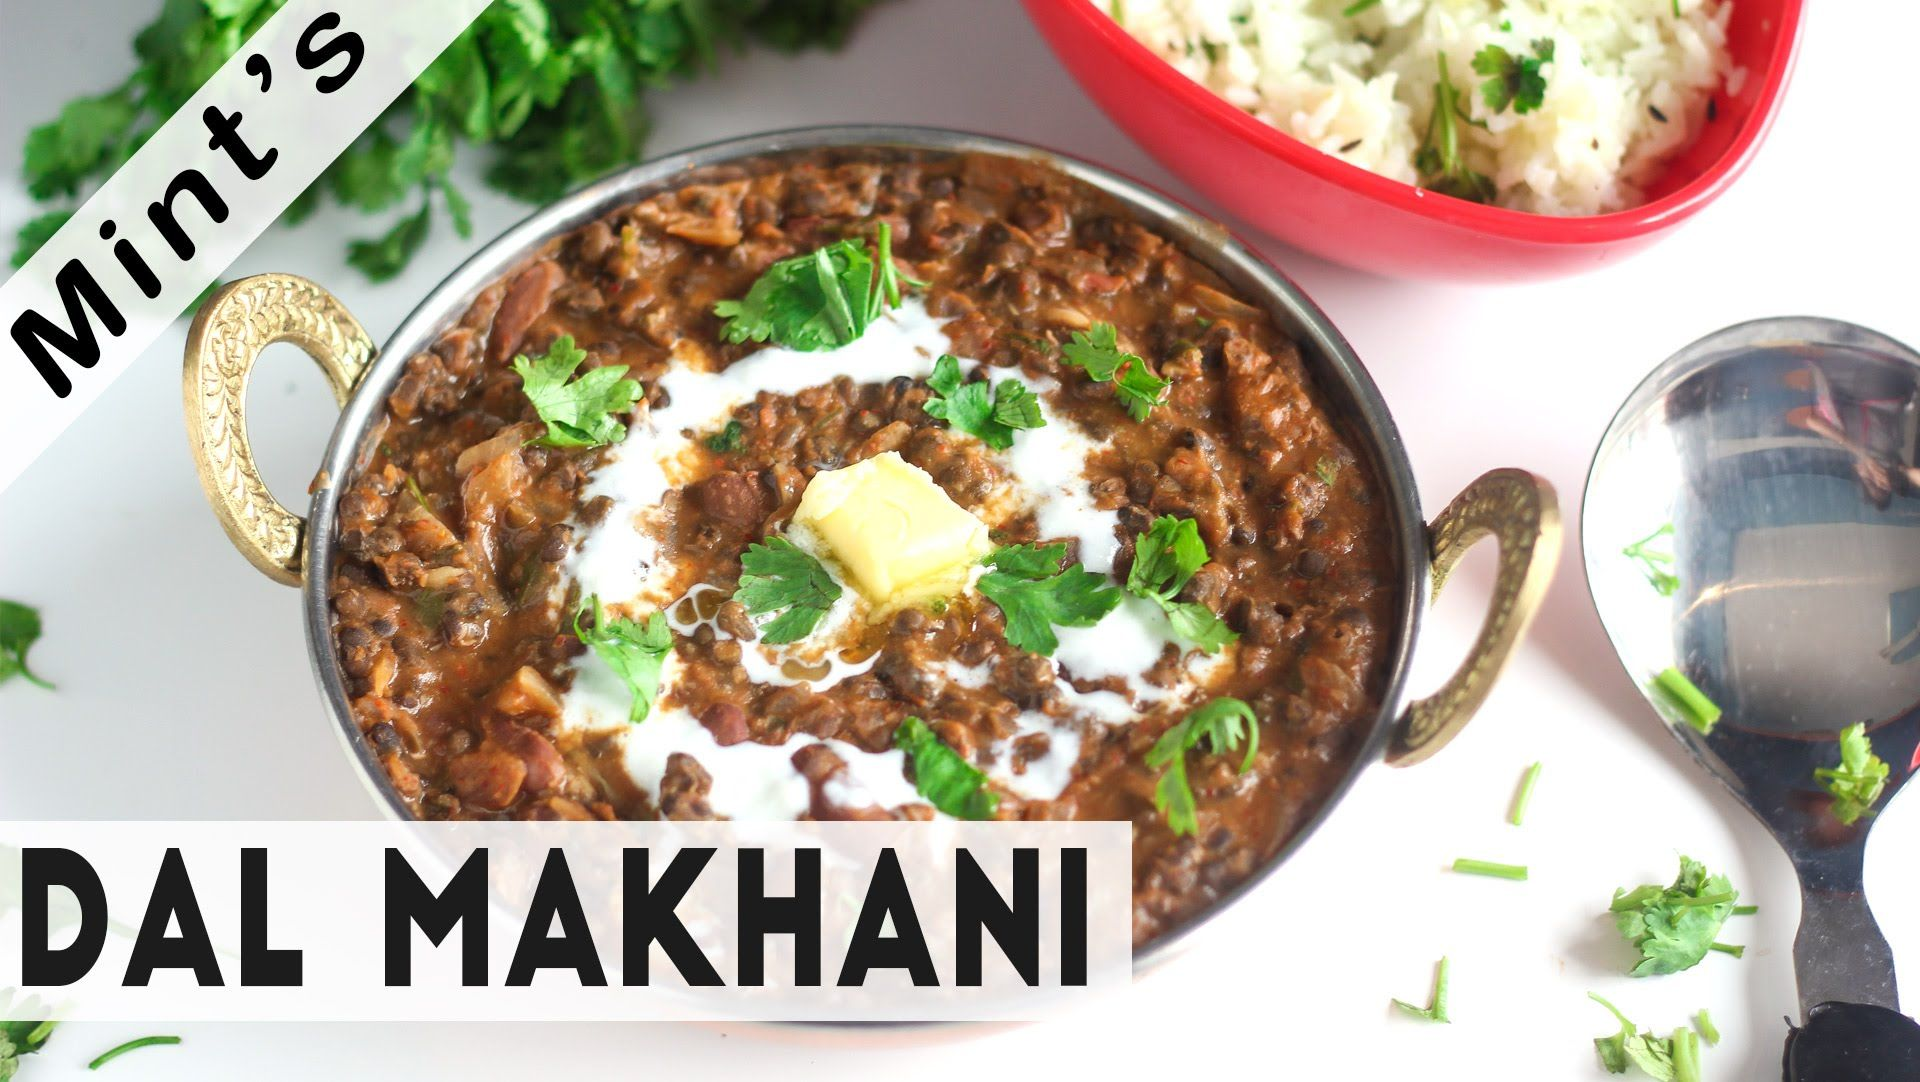 Httpcooking recipes easyvegvegetariandal makhani recipe in dal makhani recipe in hindi restaurant style its a fantastic indian vegetarian recipe and prepared in almost every north indian household forumfinder Images